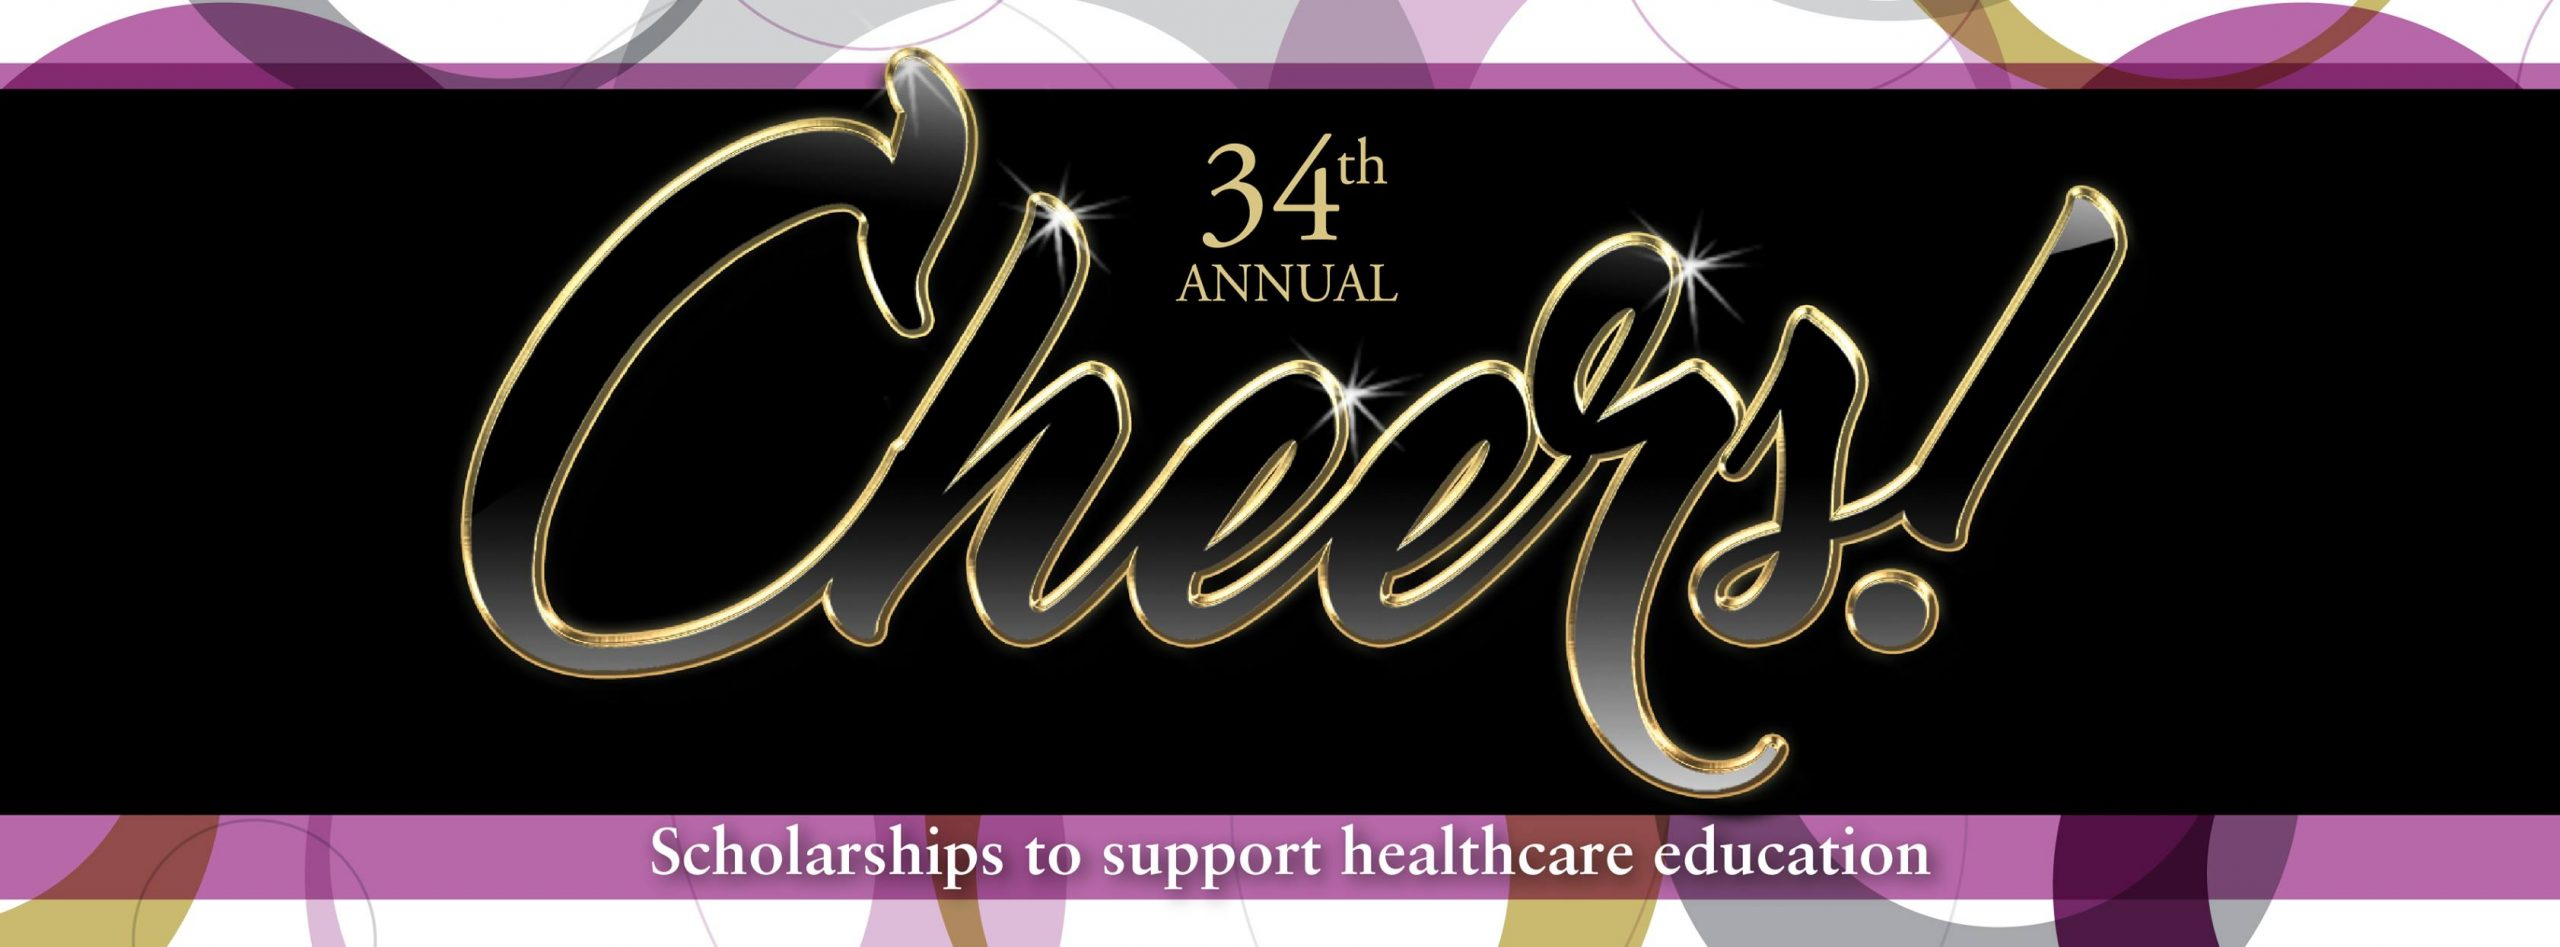 34th Annual Cheers!